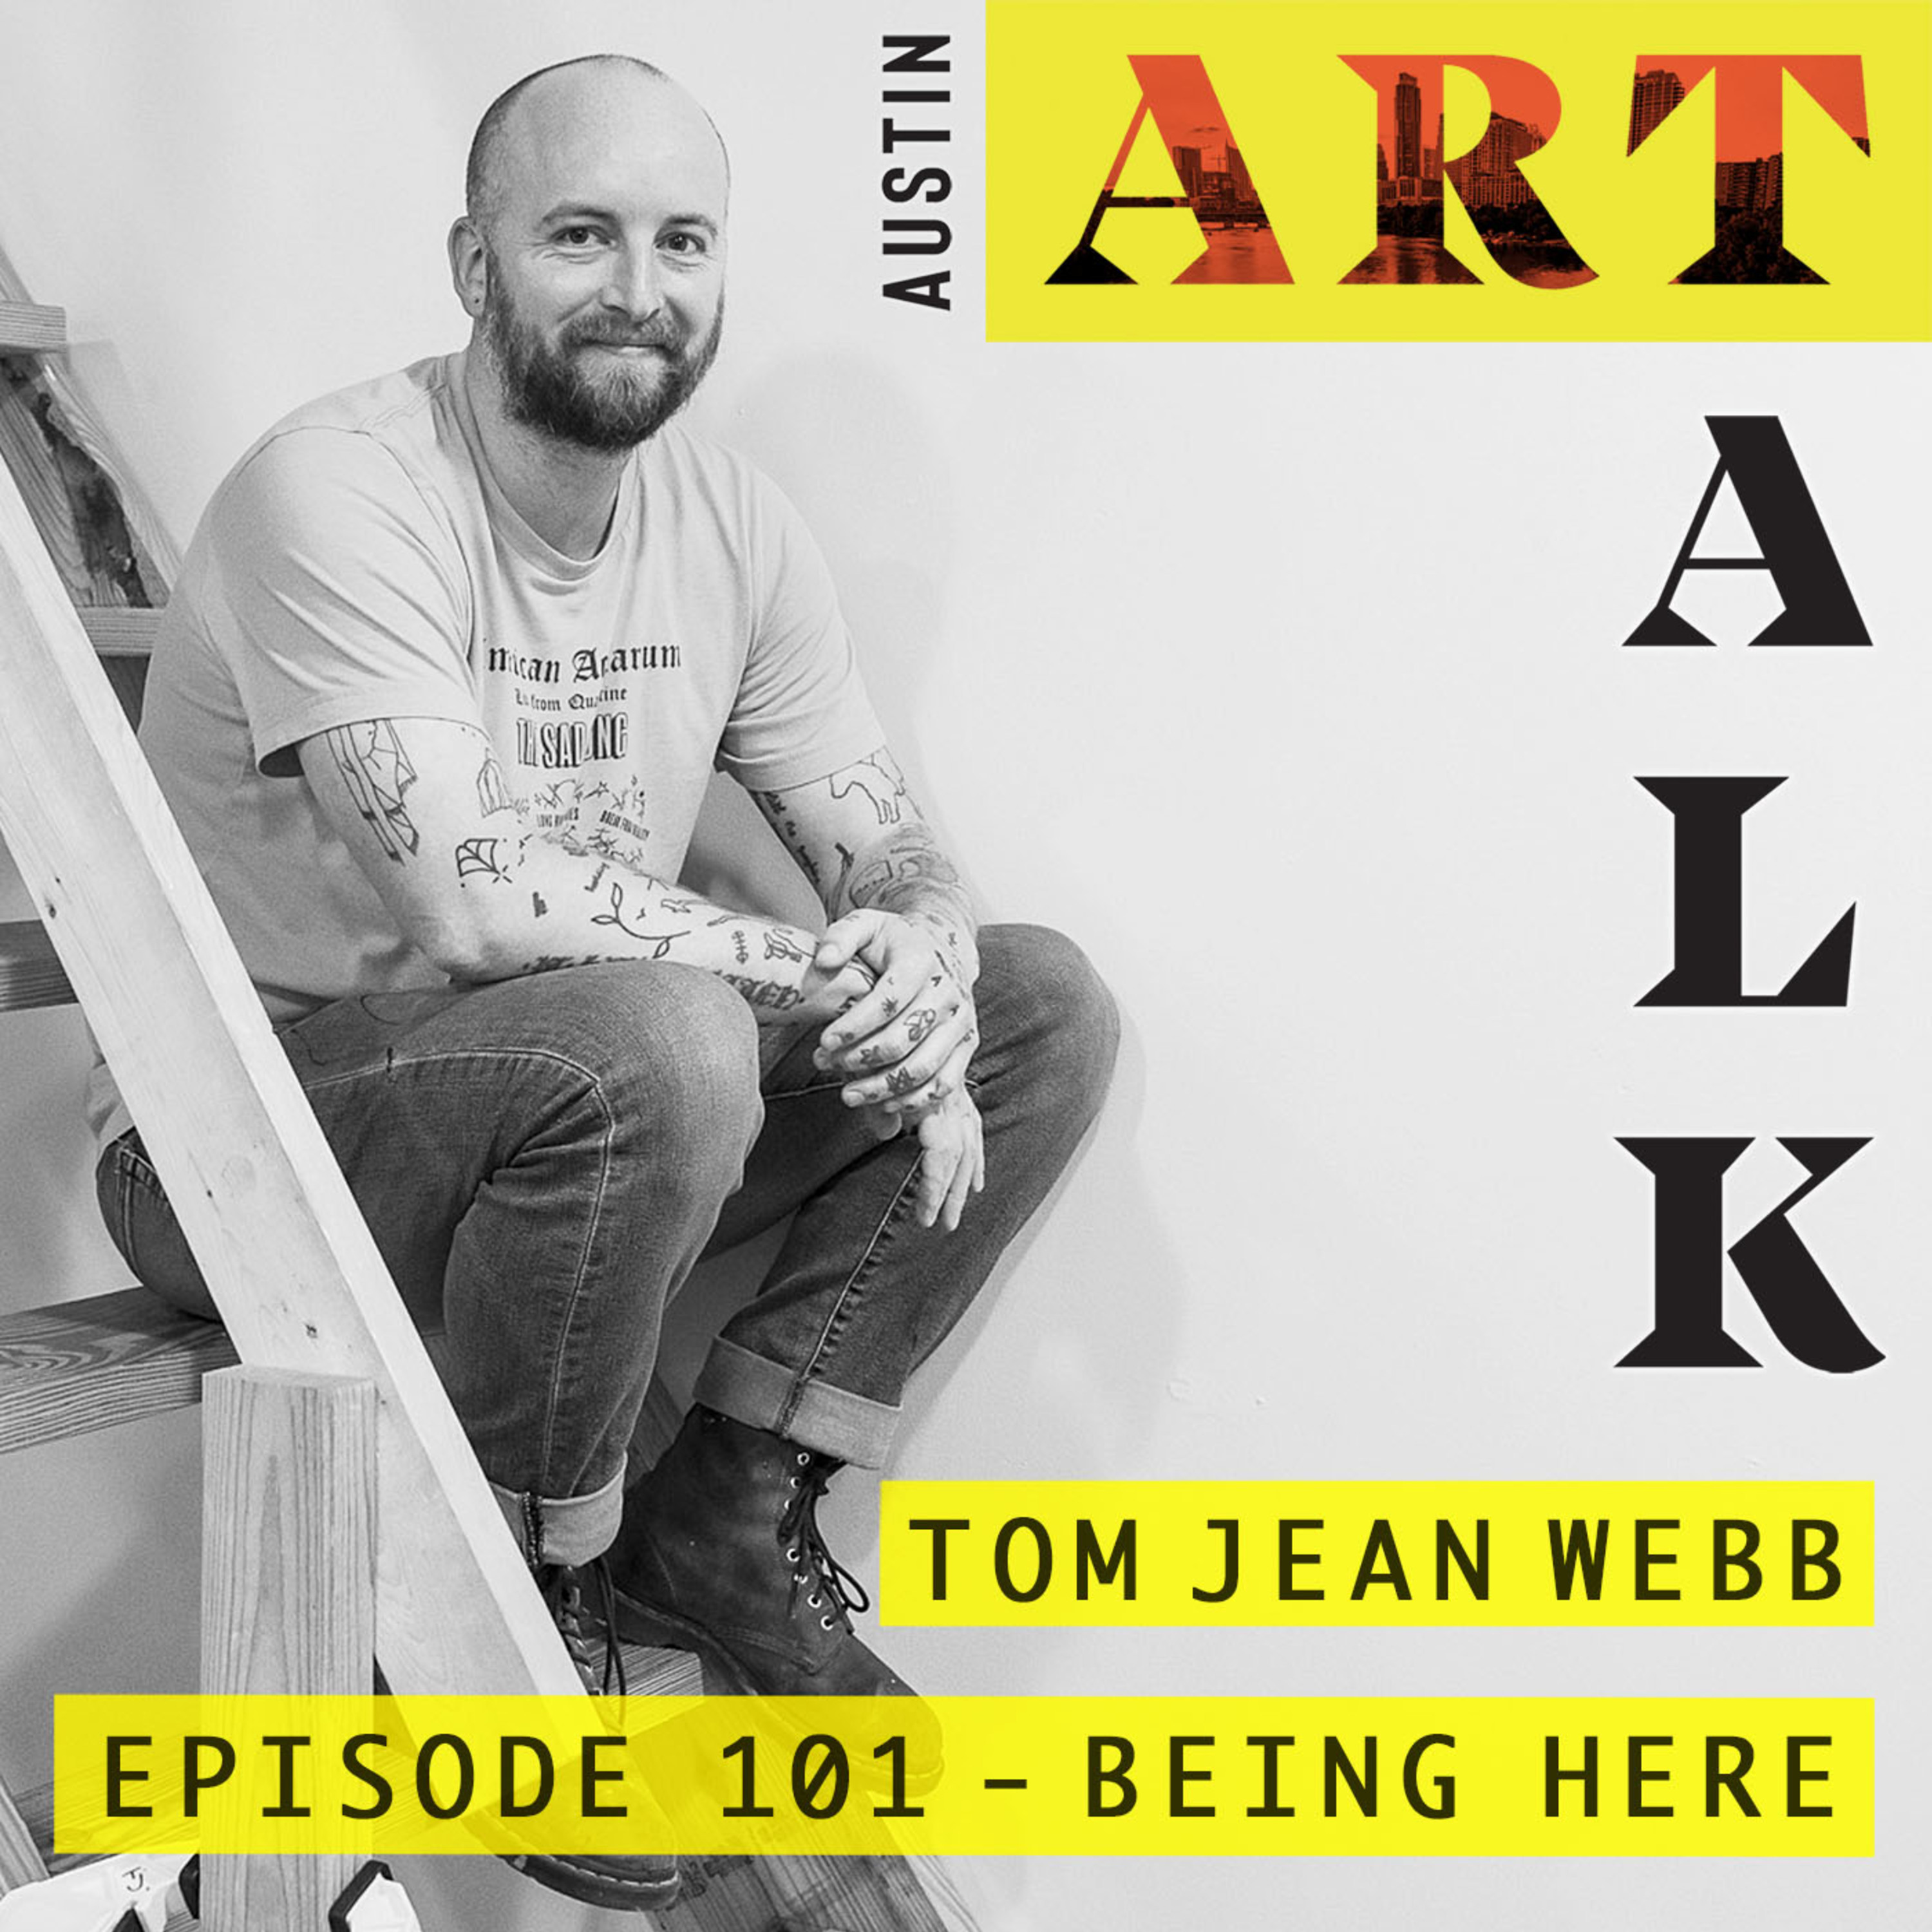 Episode 101: Tom Jean Webb - Being Here